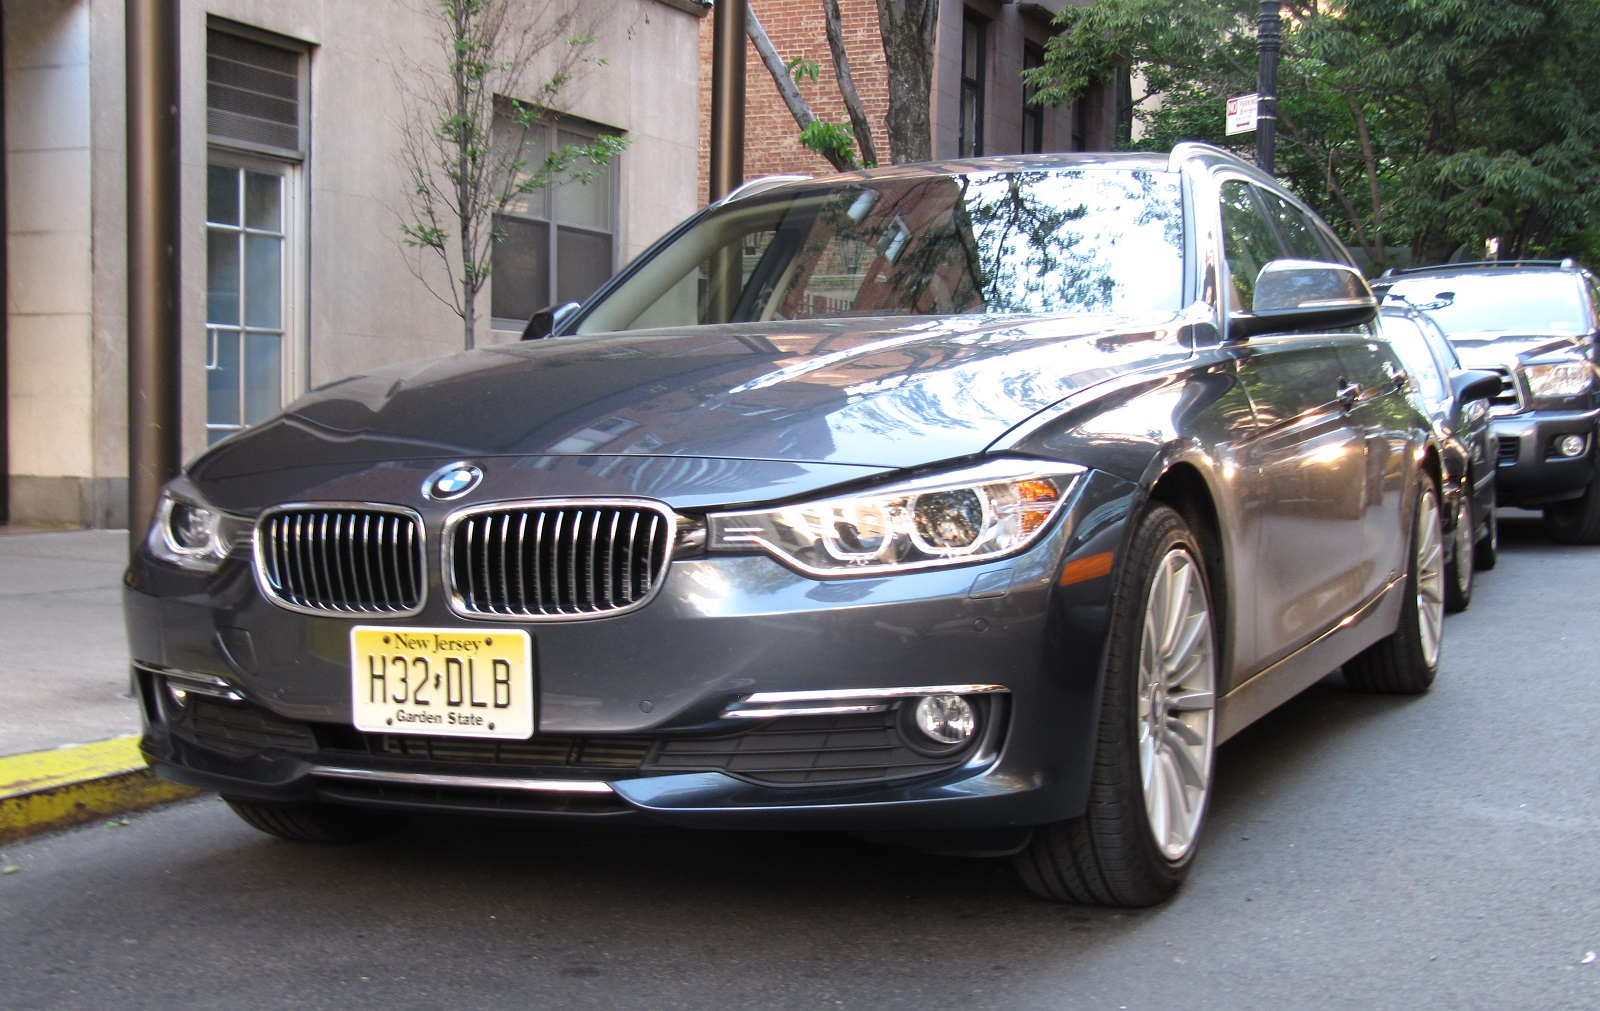 2014 bmw 328d xdrive 40 mpg diesel sport wagon reviewed. Black Bedroom Furniture Sets. Home Design Ideas